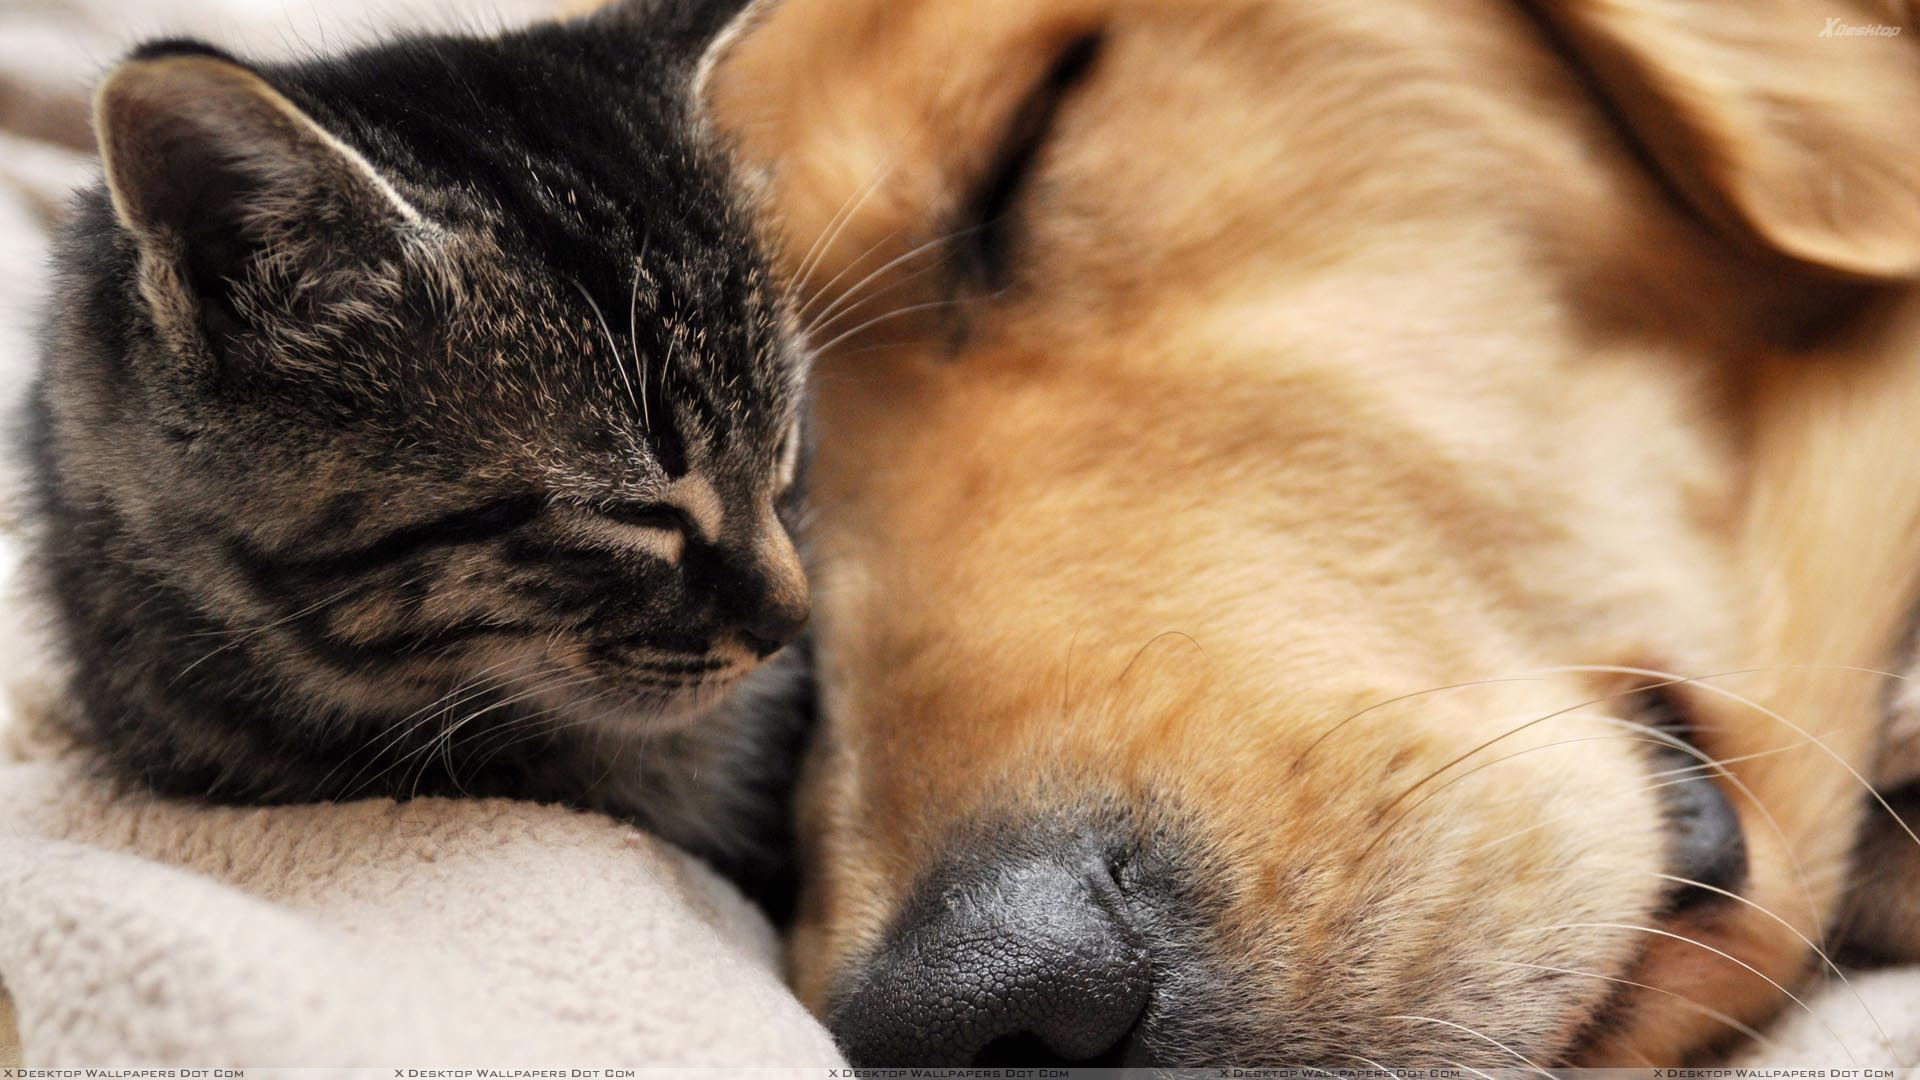 Dog Sleeping With Cat Download 30